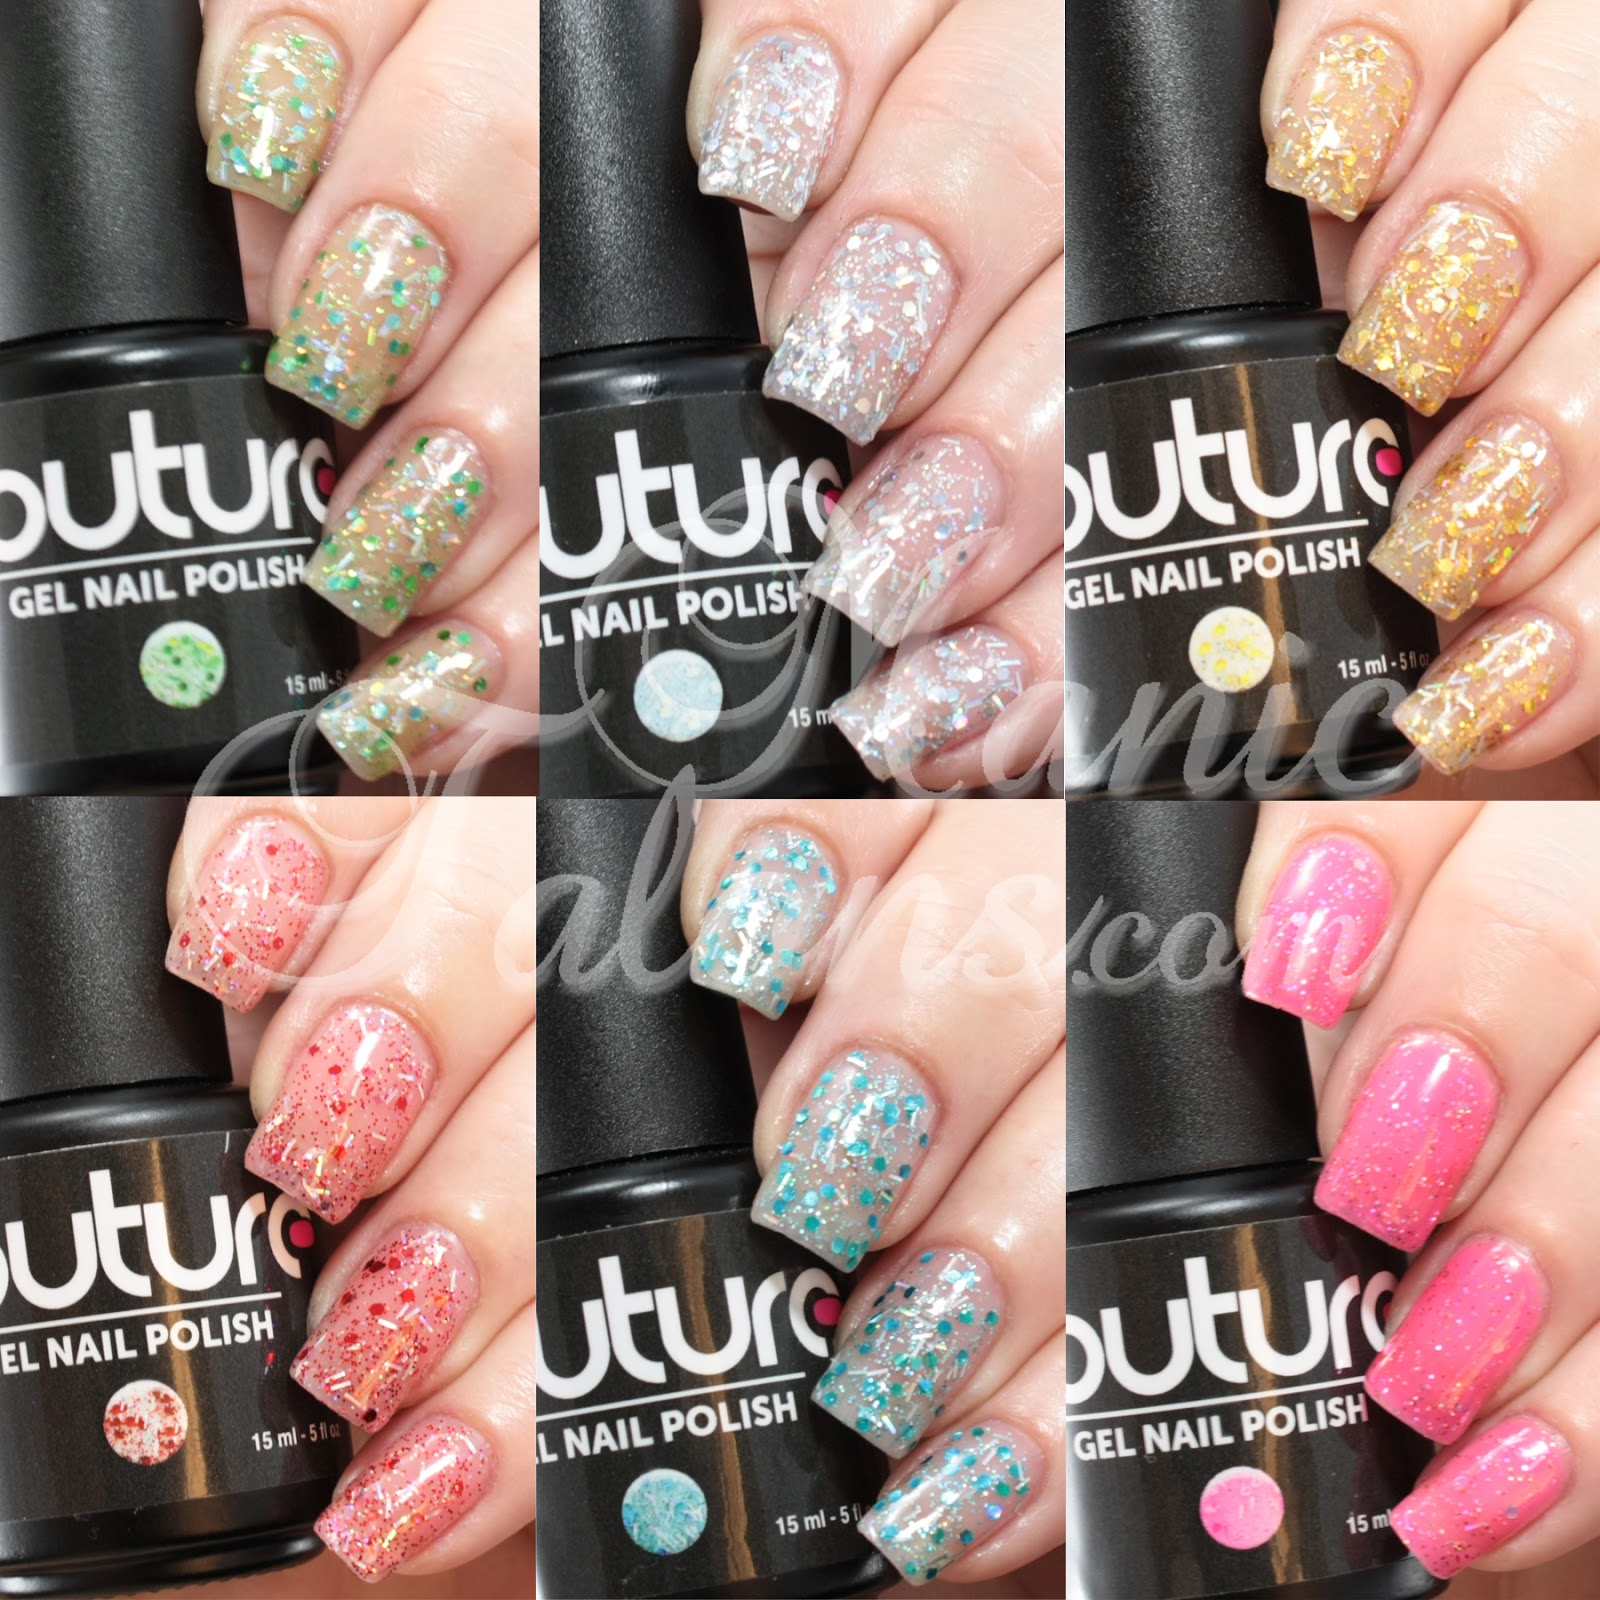 Couture Soak Off Gel Nail Polish - All That Glitters Collection Swatches